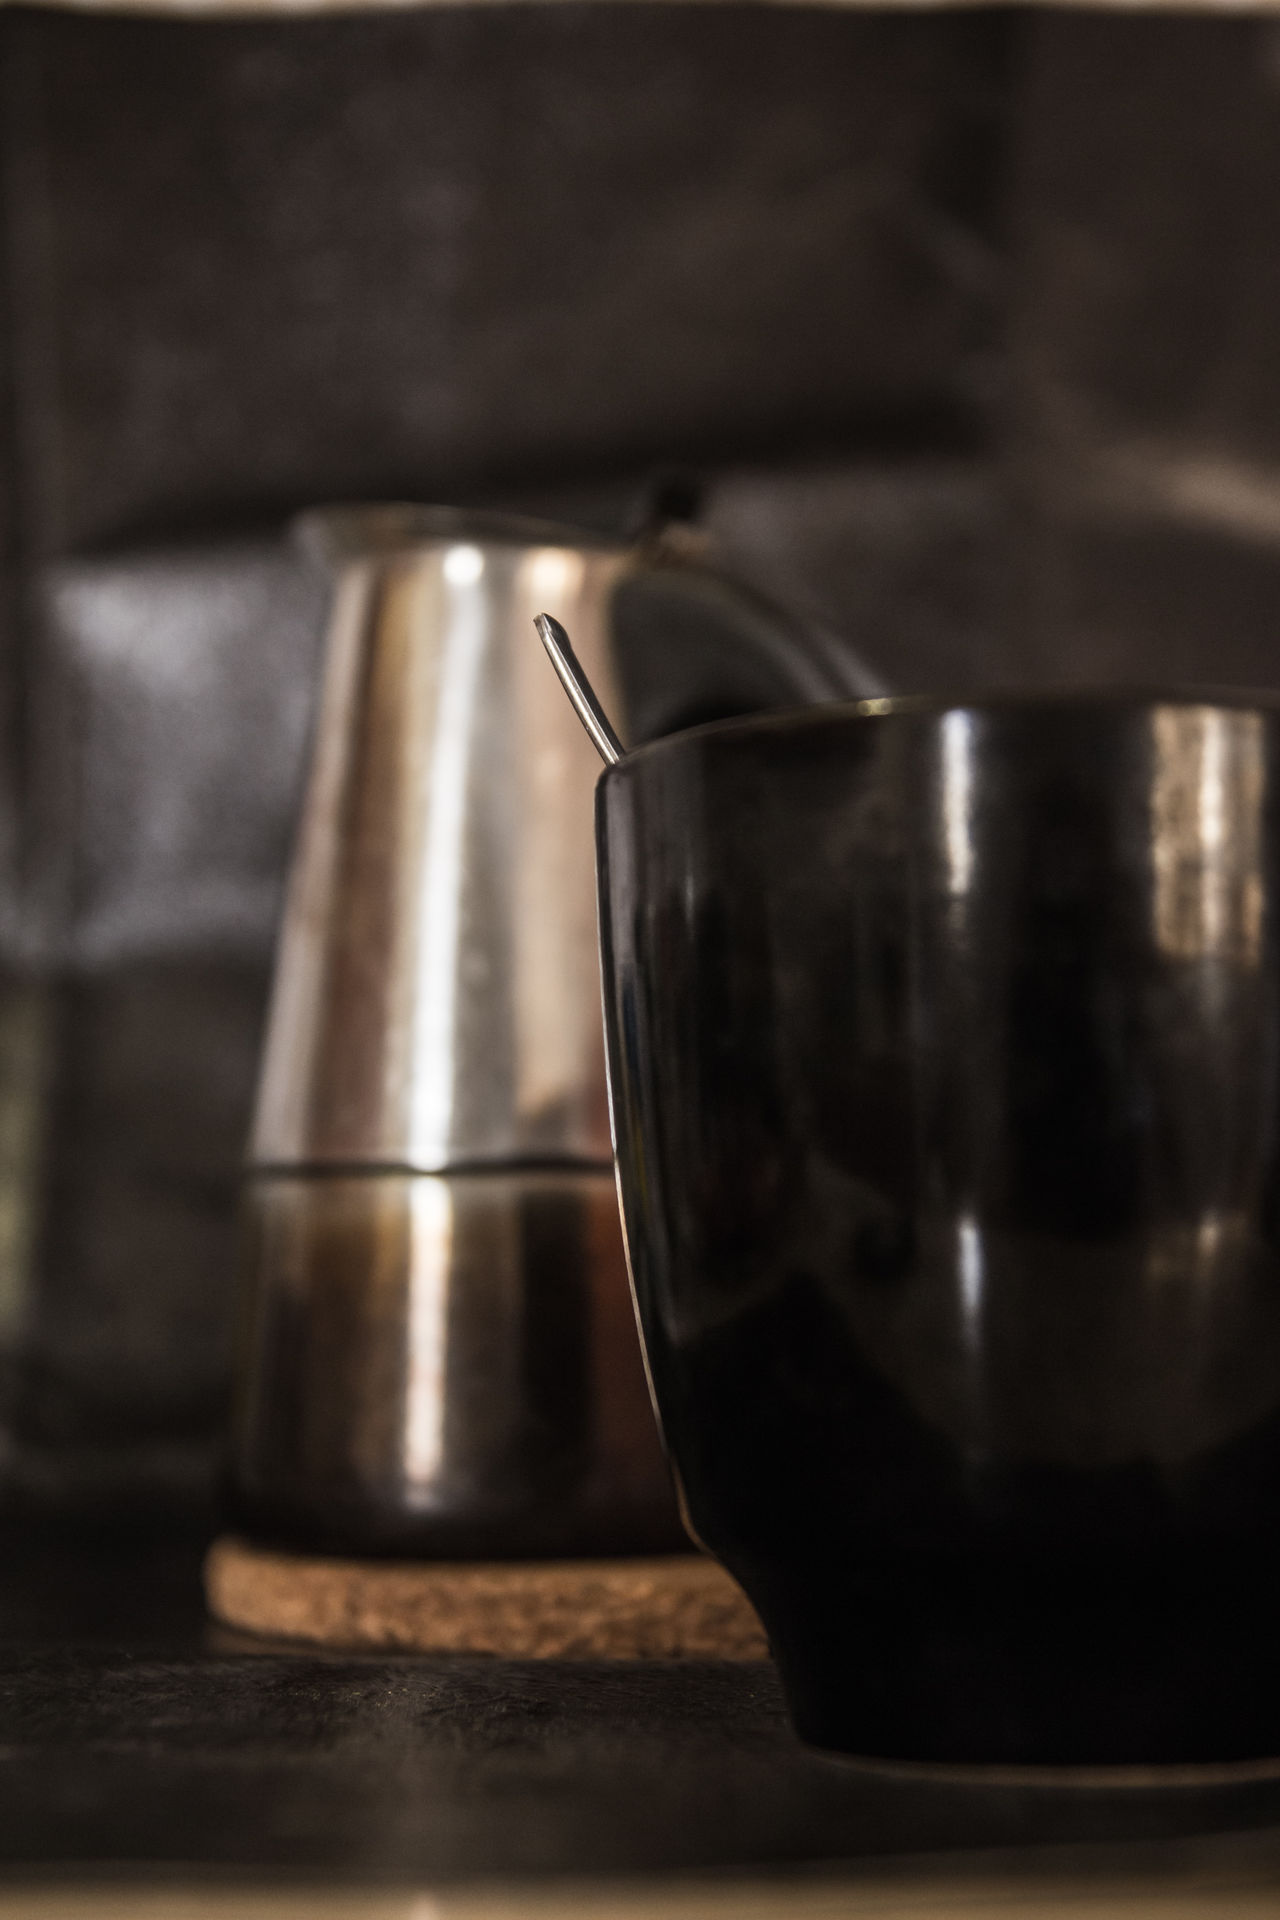 Close-up Coffee Coffee Cup Coffee Maker Coffee Time Day Drink Food Food And Drink Freshness Indoors  No People Refreshment Table